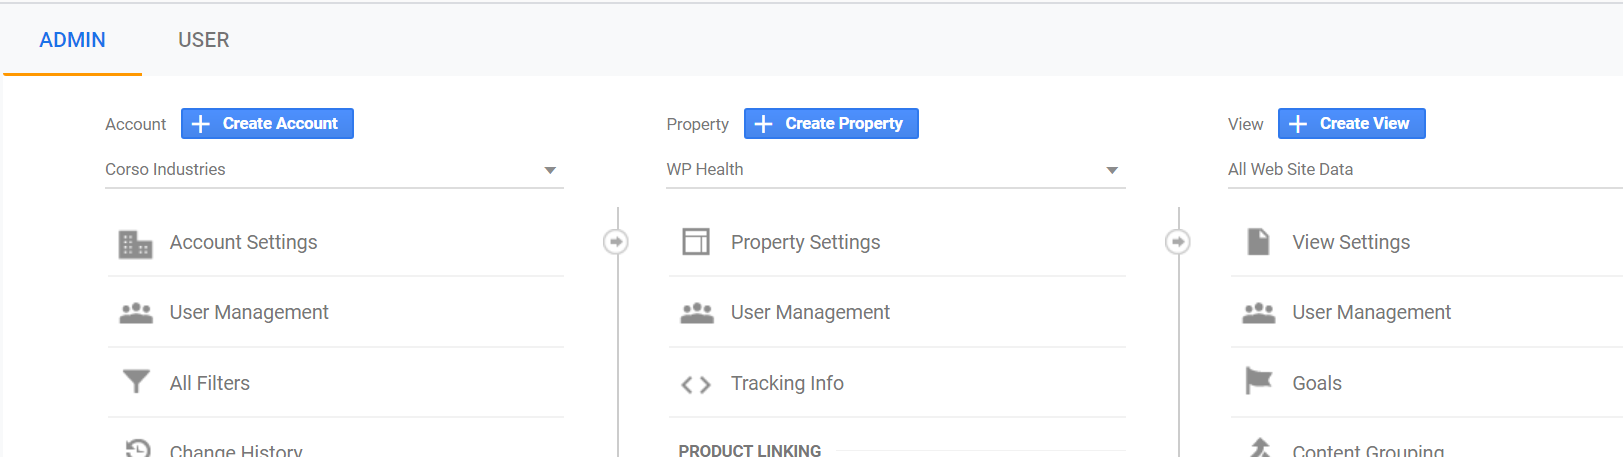 Screenshot of the Admin view in Google Analytics showing columns for Account, Property, and View.